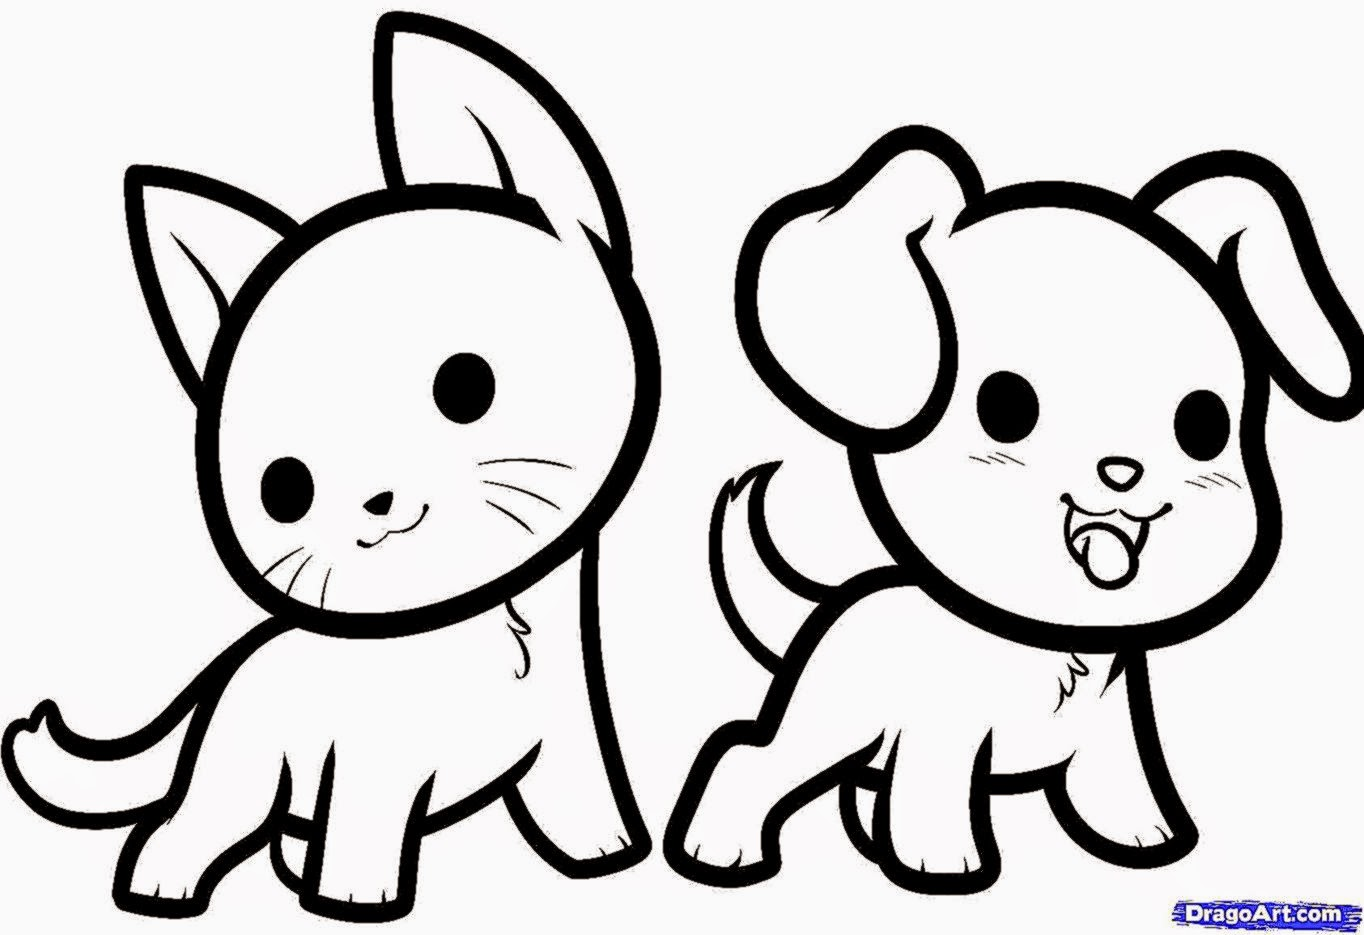 1364x935 Easy To Draw Cute Animal Drawings Cute Drawings